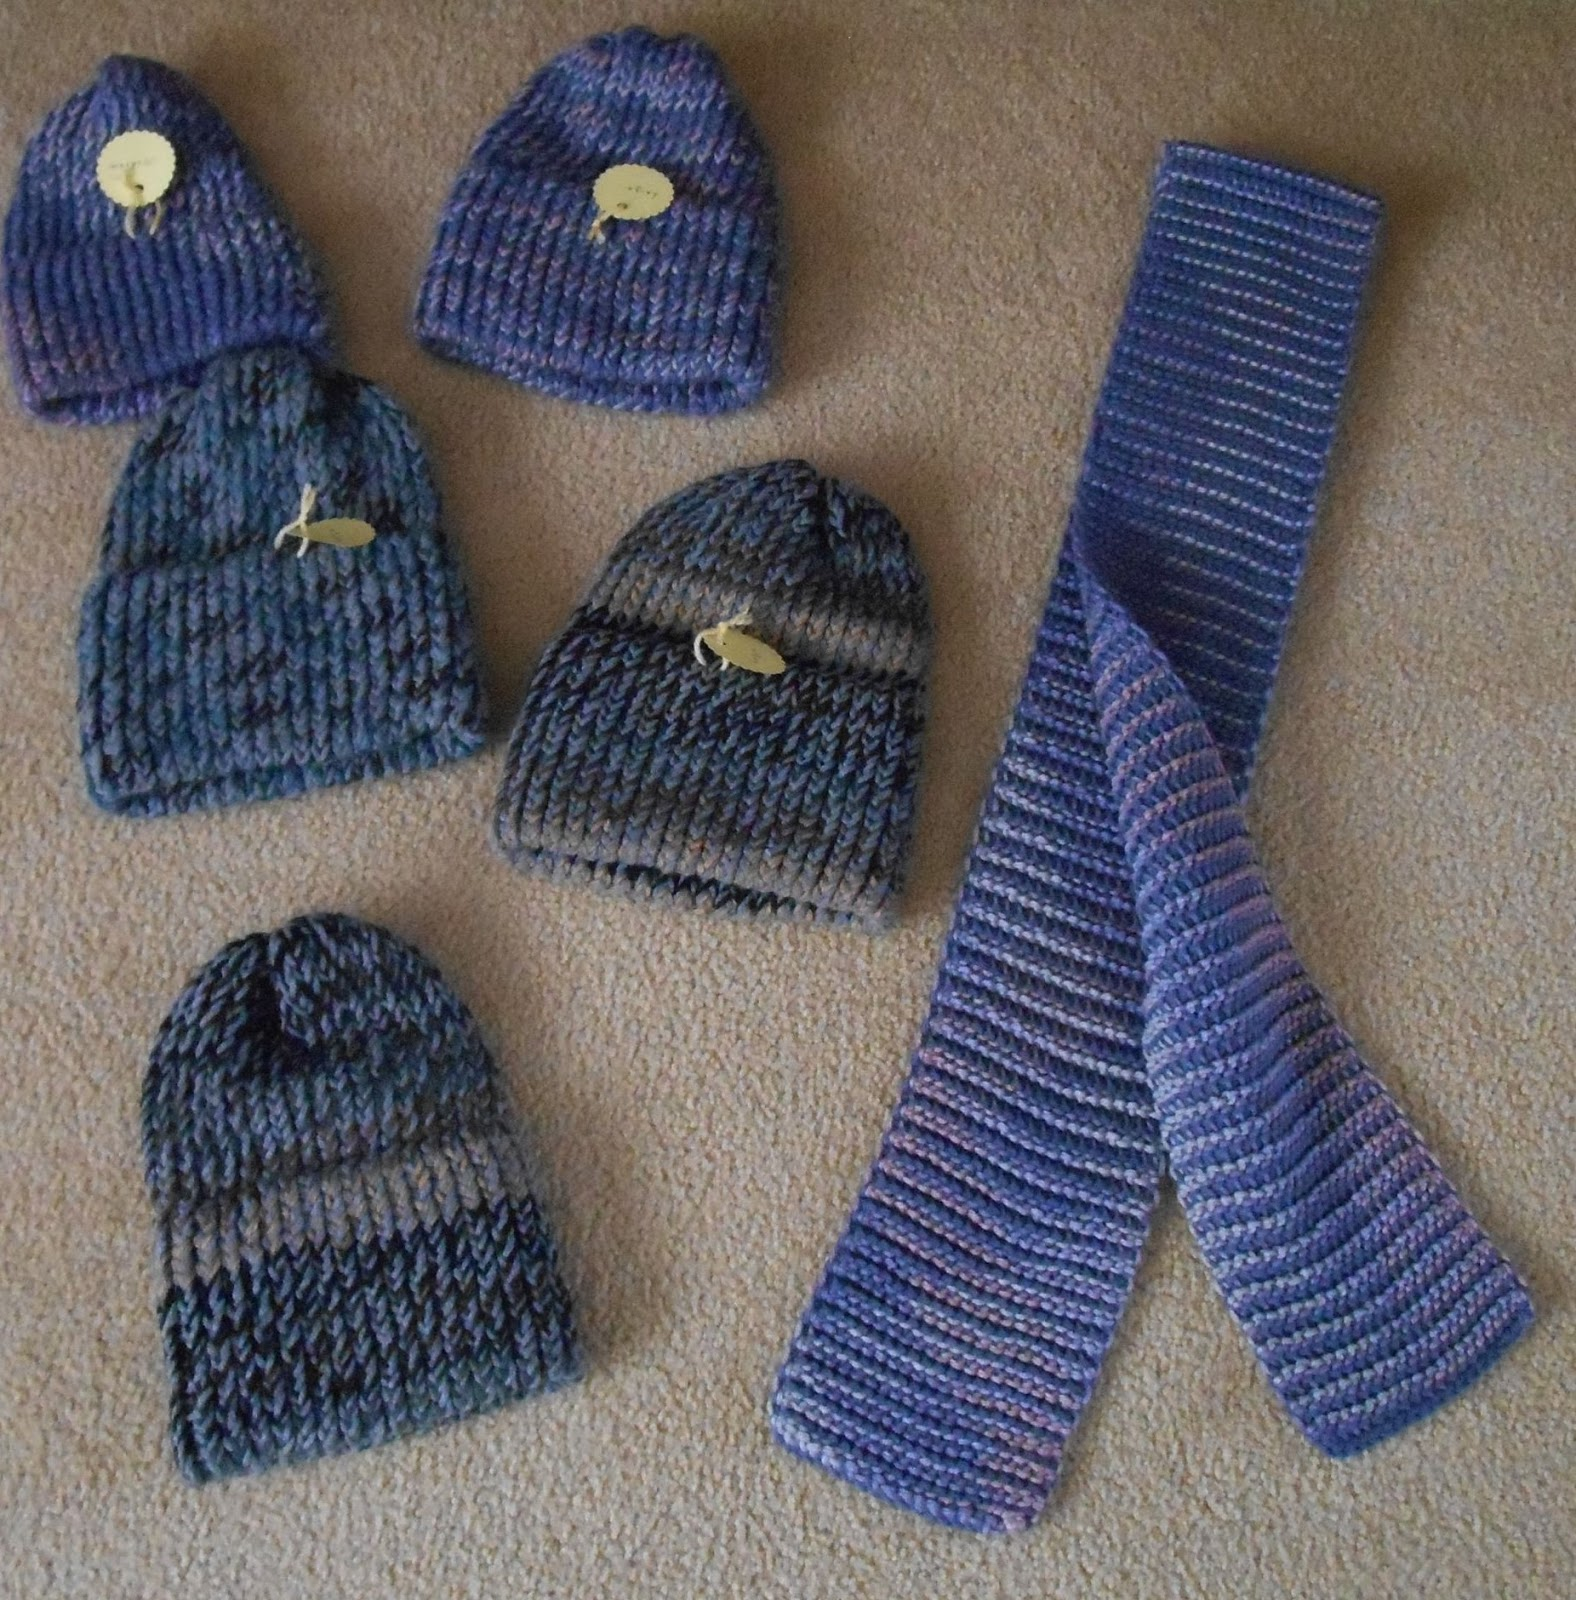 Knitting Scarves For The Homeless : Bridge and beyond knitted hats scarves for the homeless